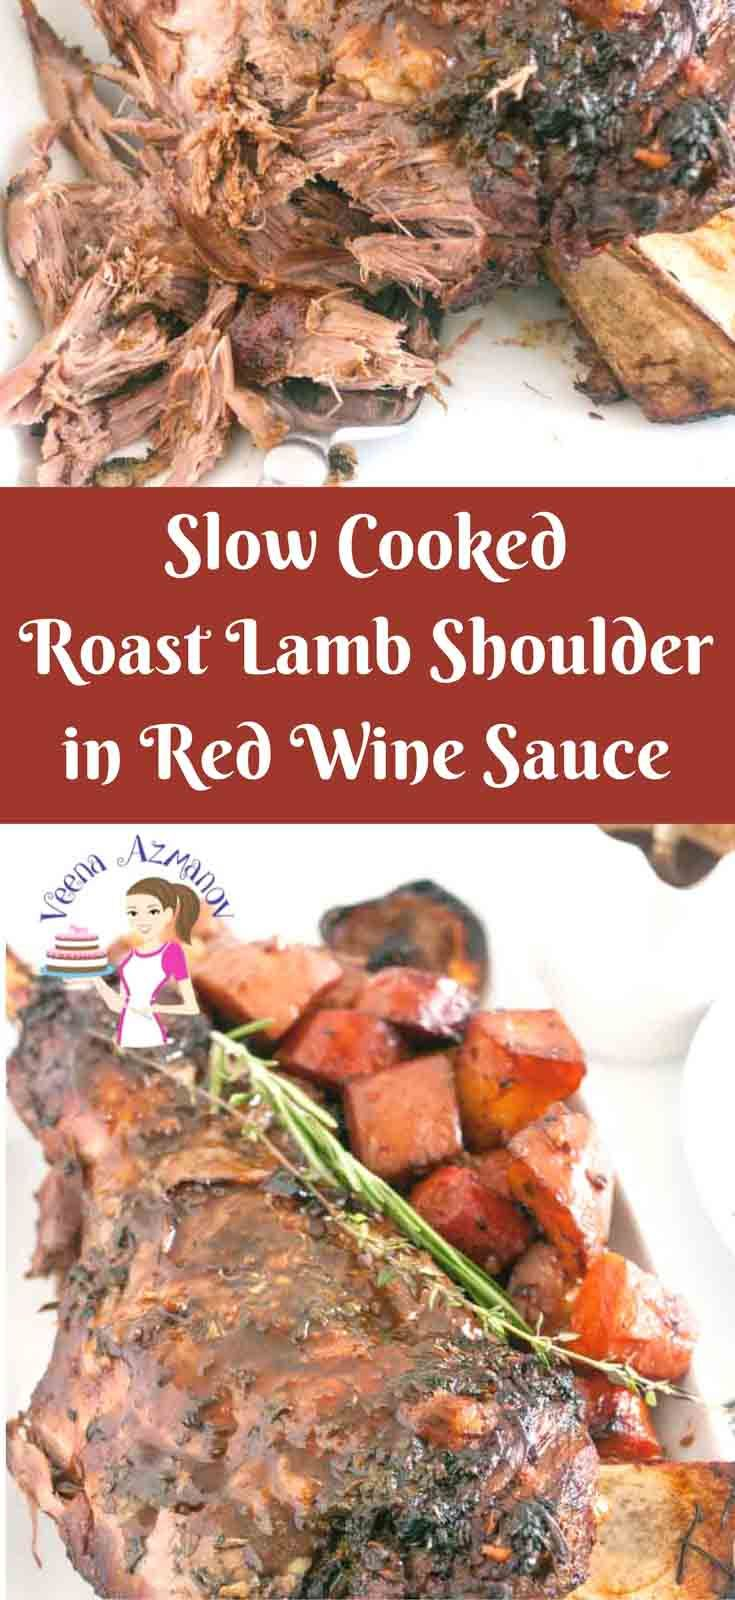 This Succulent Slow Cooked Roast Lamb Shoulder Is Cooked Low And Slow Keeping It Soft And Juic Slow Cooker Lamb Roast Lamb Recipes Crockpot Lamb Shoulder Roast